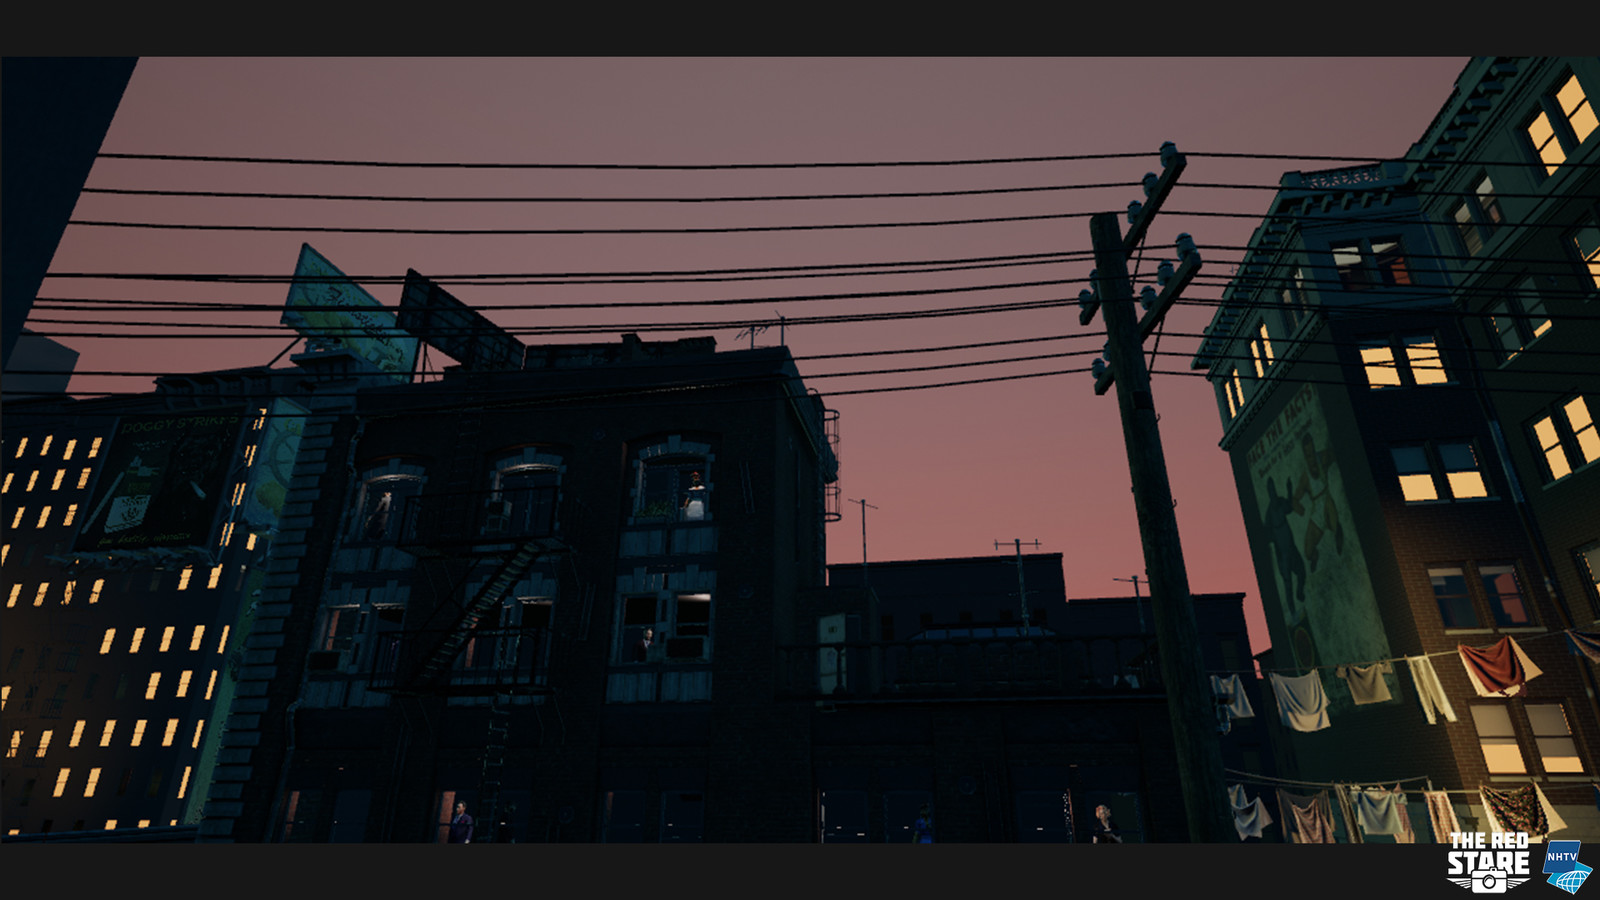 The evening falls, and the building and telephone-pole in front of you give a really nice silhouette.